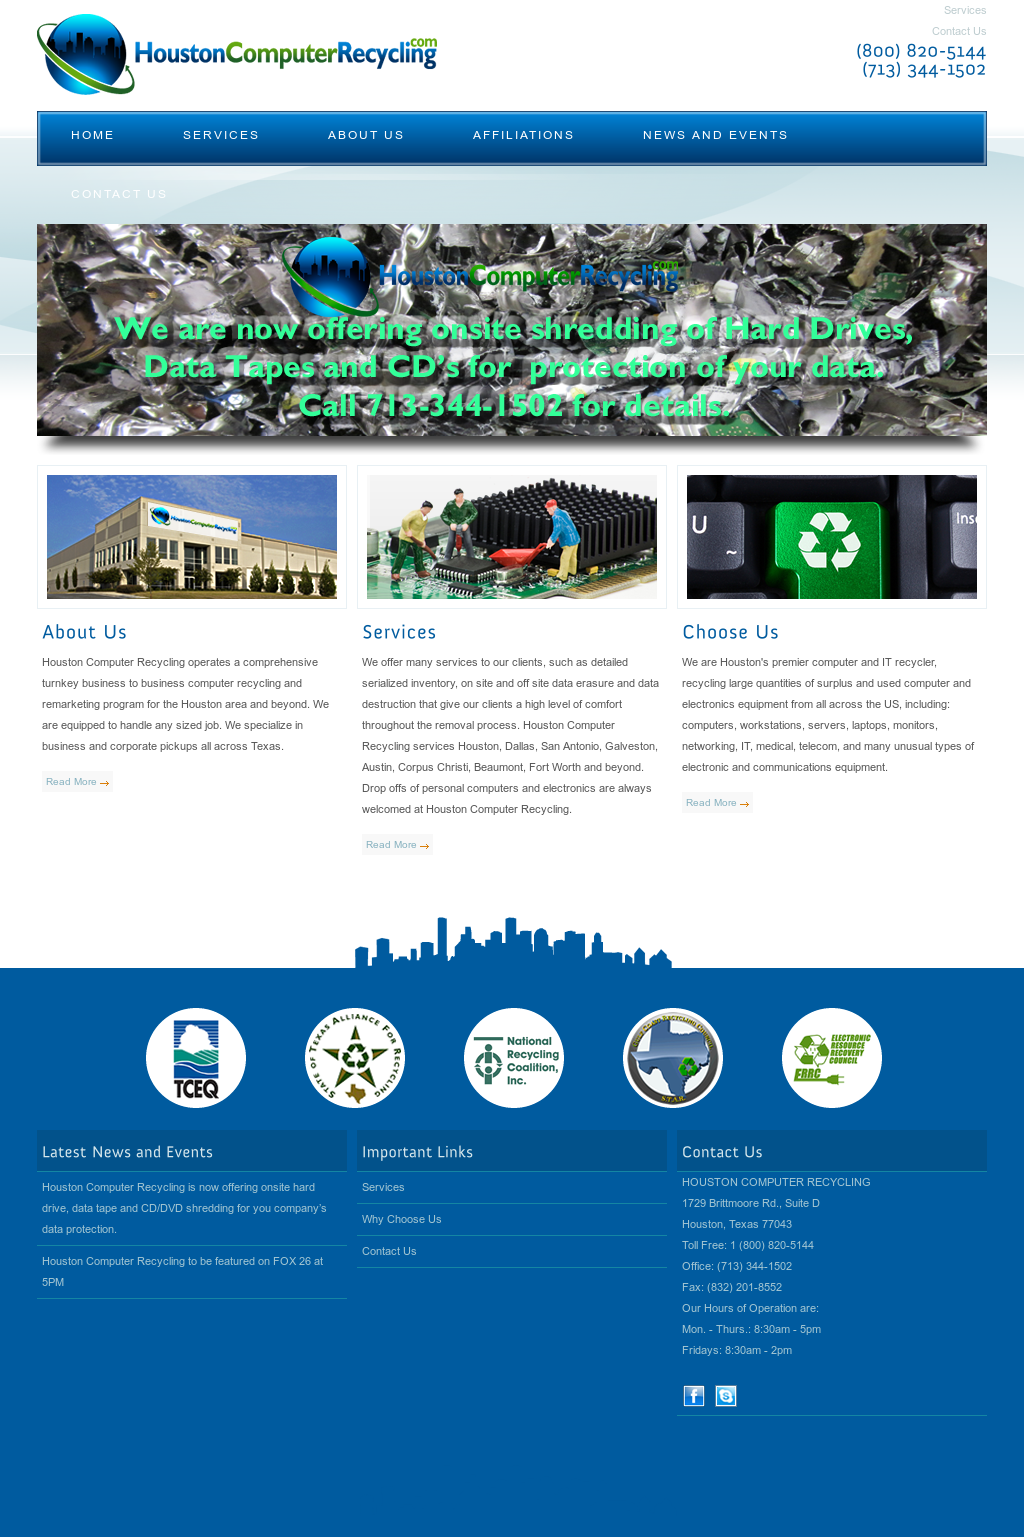 Houstoncomputerrecycling Competitors, Revenue and Employees - Owler